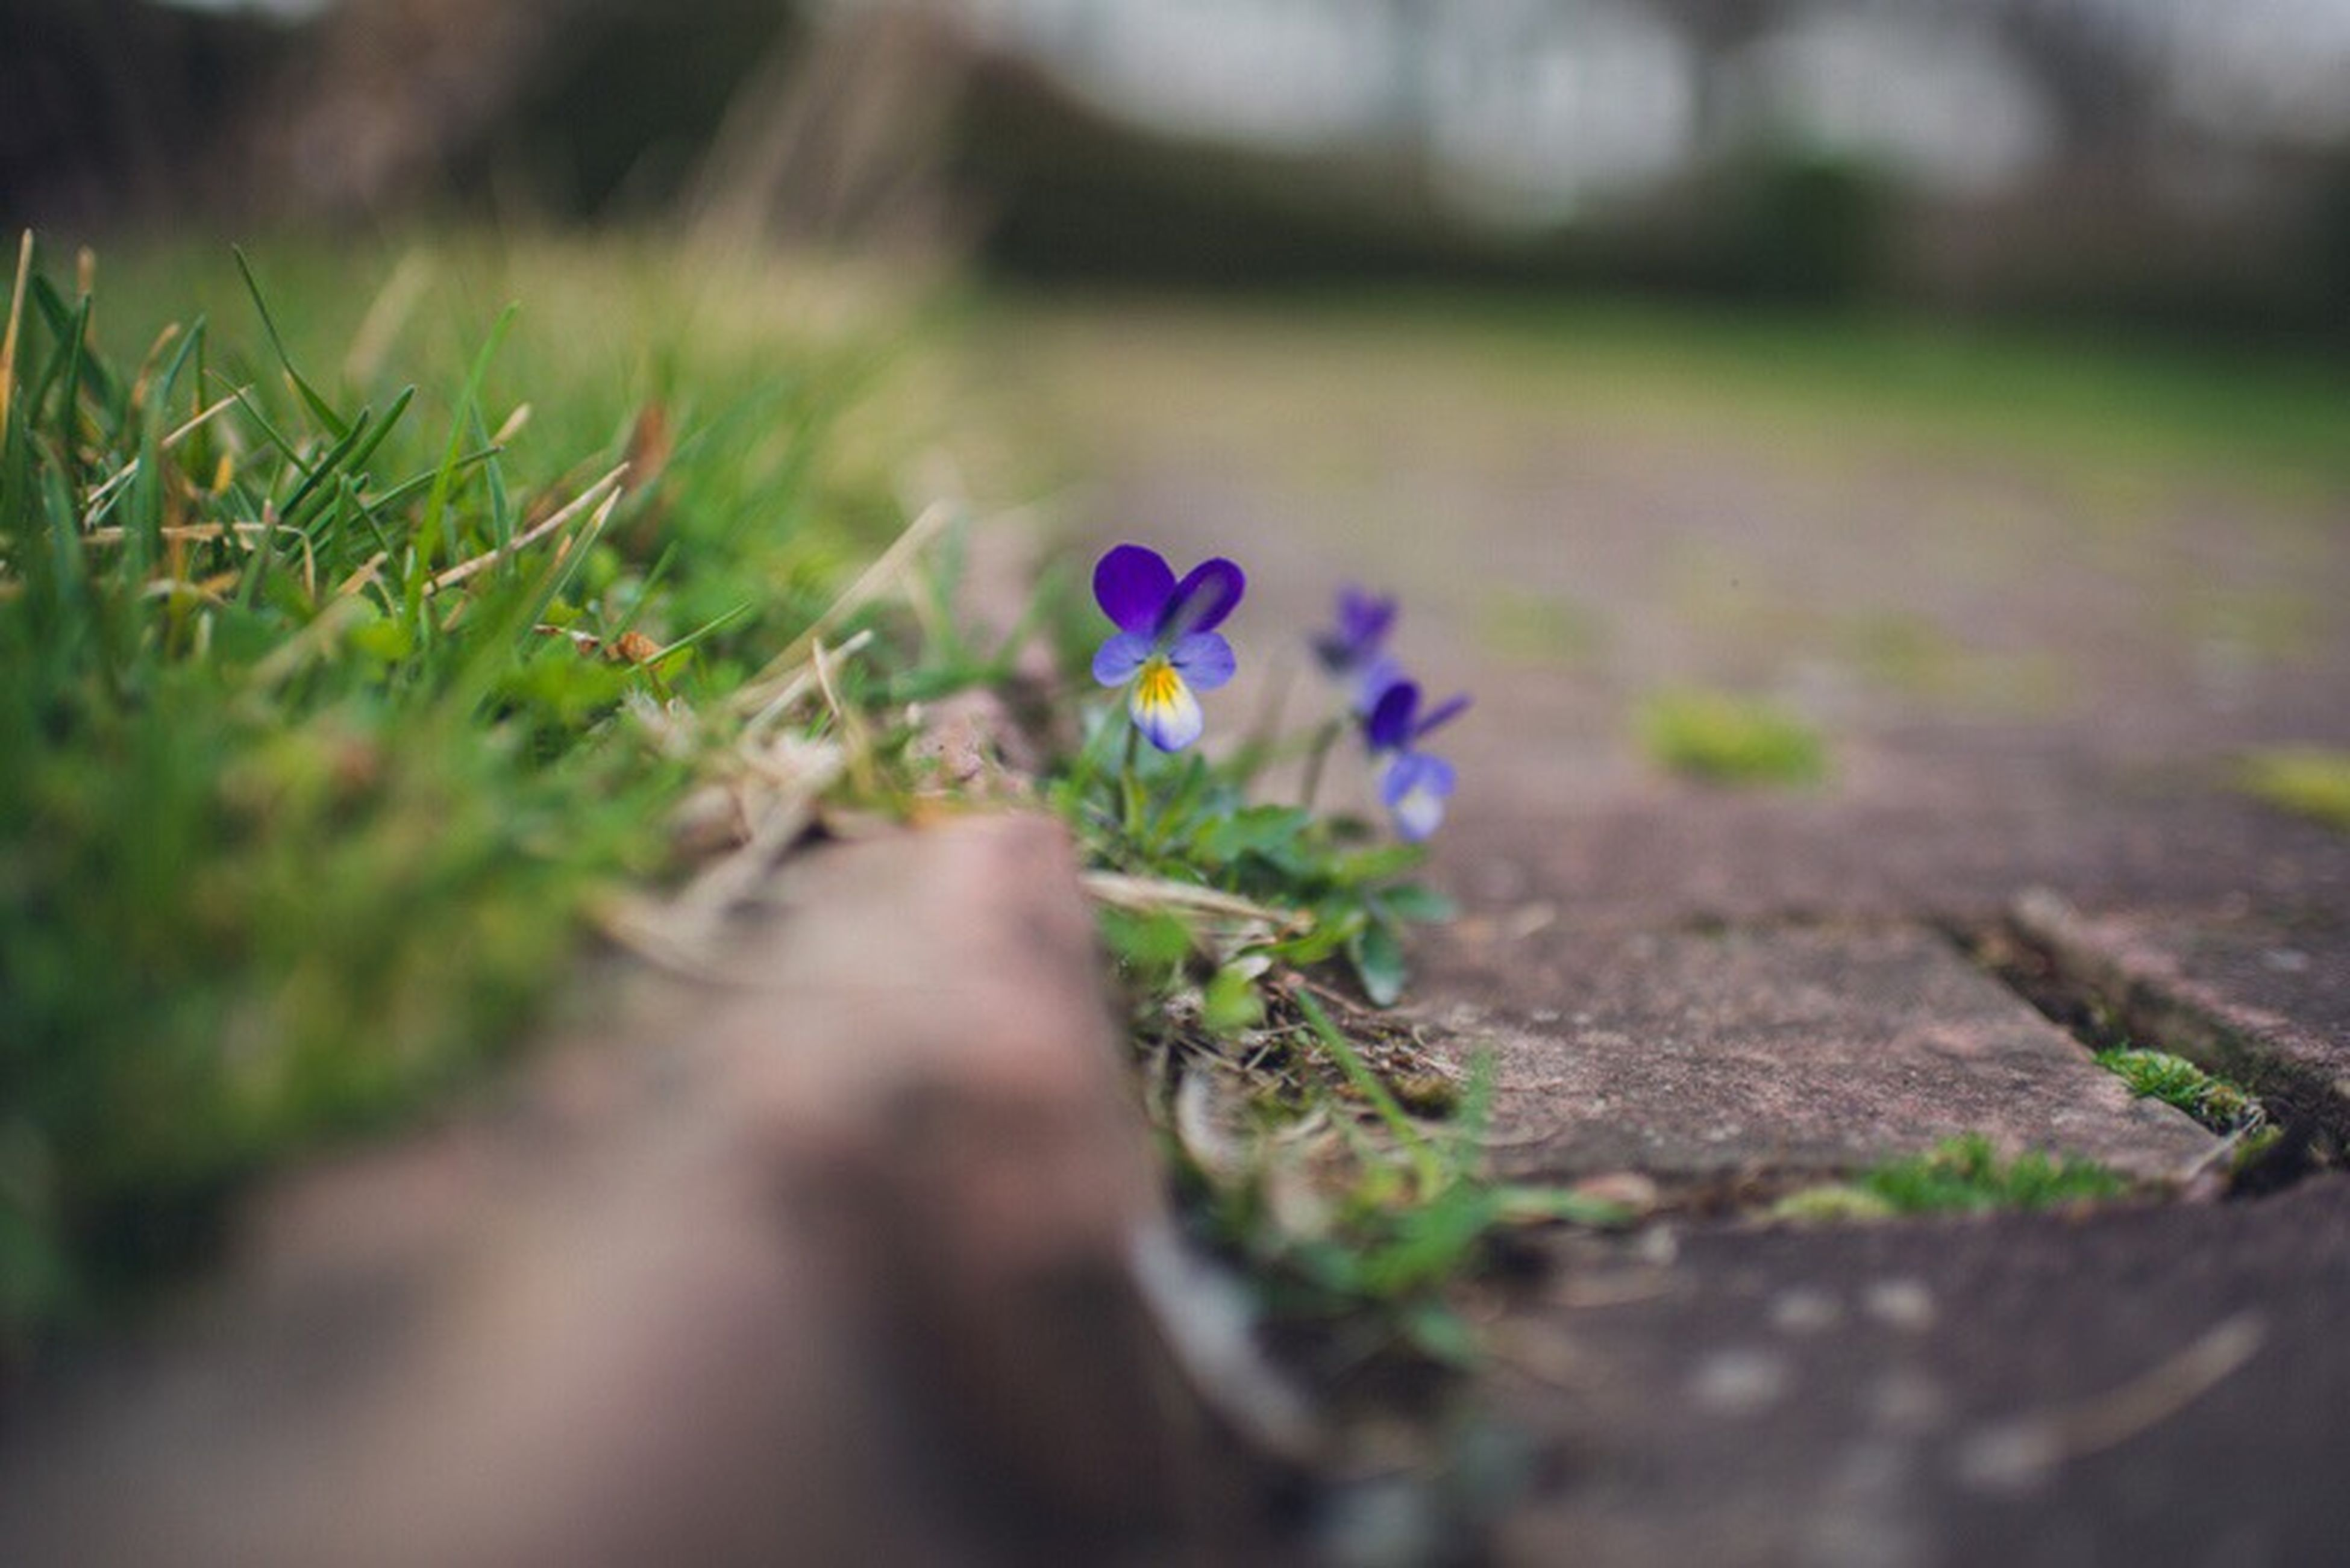 flower, growth, plant, selective focus, the way forward, freshness, nature, fragility, surface level, beauty in nature, field, green color, focus on foreground, blooming, petal, day, tranquility, outdoors, grass, diminishing perspective